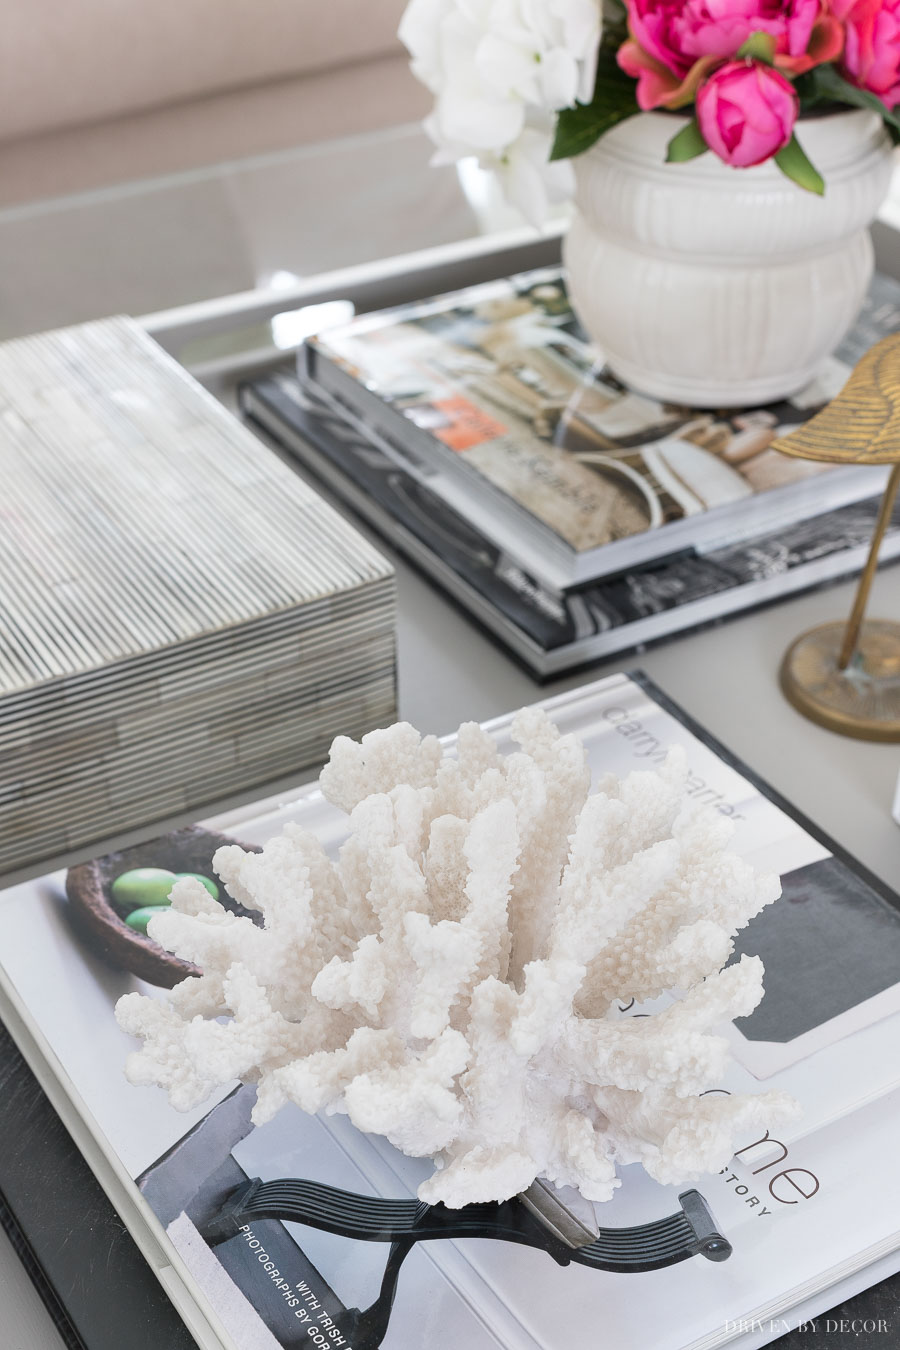 Lots of ideas for great coffee table decor in this post, including adding natural elements like coral!